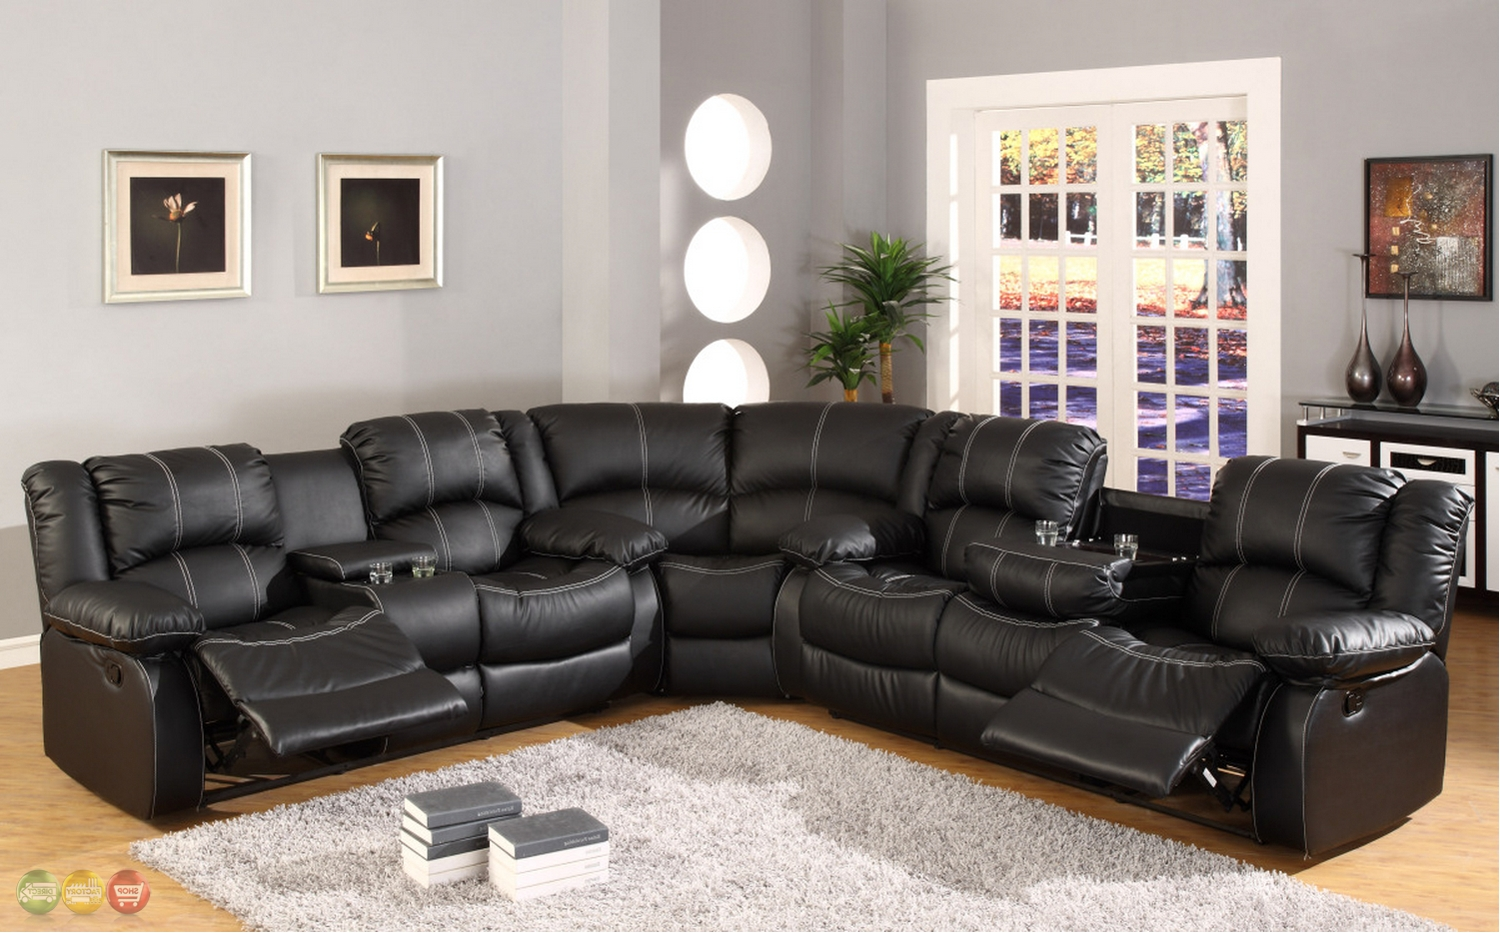 Black Faux Leather Reclining Motion Sectional Sofa W/ Storage Within 2019 Leather Sofas With Storage (View 4 of 20)